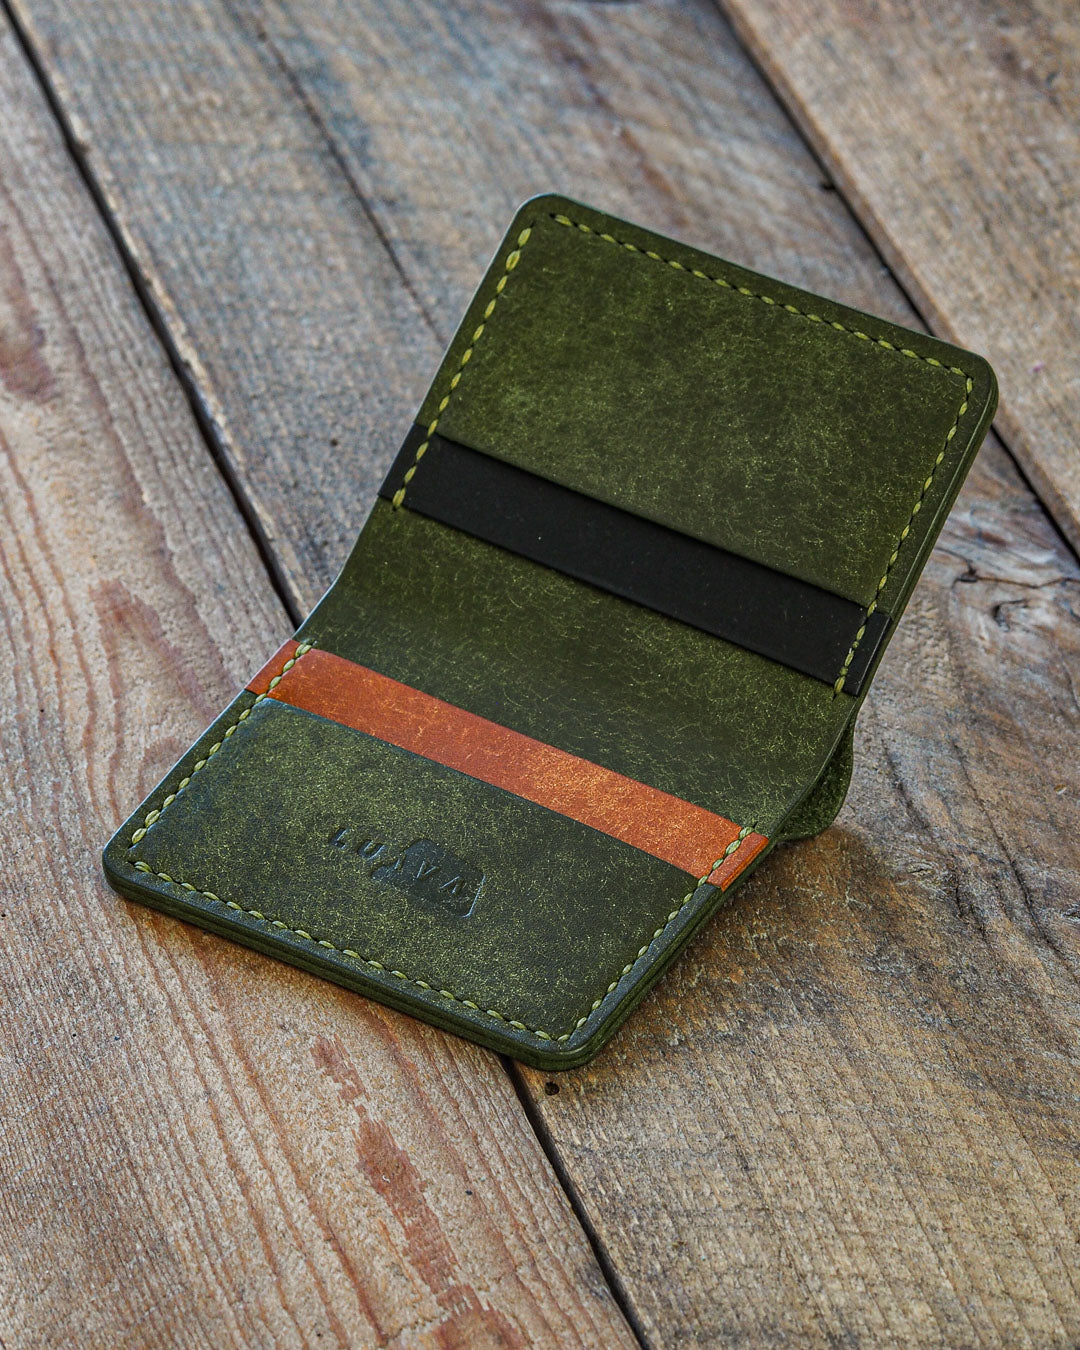 Luava handmade leather wallet NERO card holder cardholder handcrafted pueblo olive black cognac front open angle